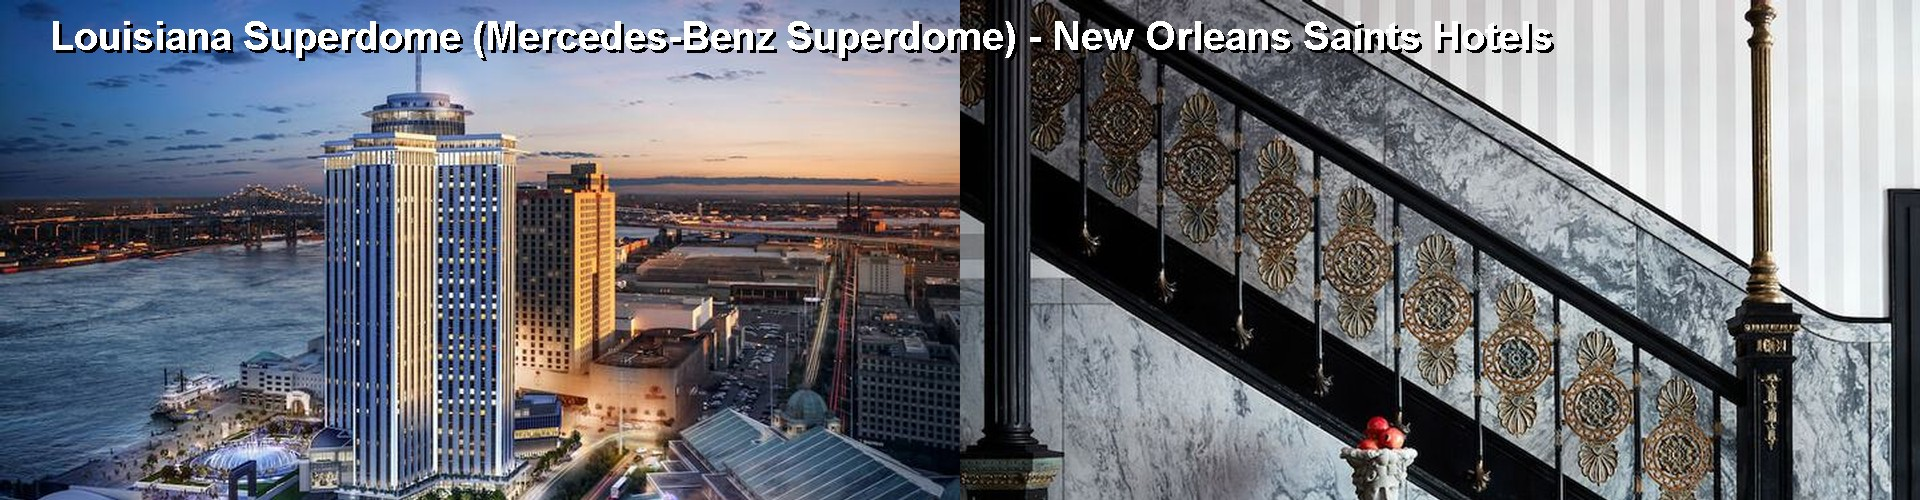 Hotels Near Louisiana Superdome (Mercedes Benz Superdome) New